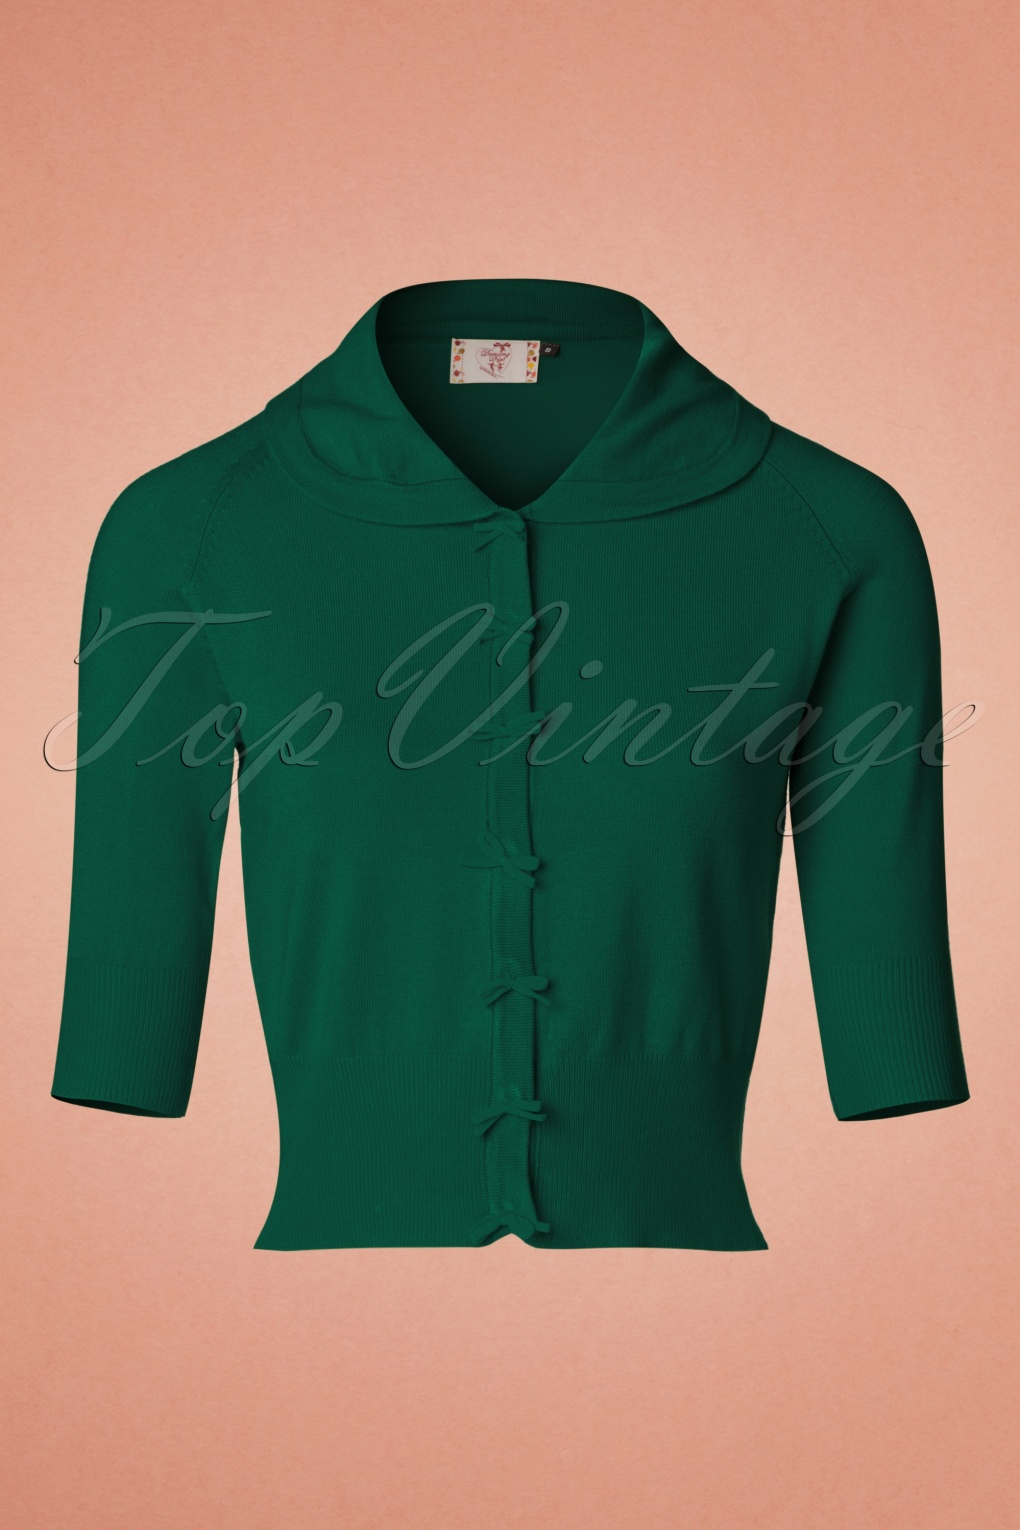 Vintage Sweaters: 1940s, 1950s, 1960s Pictures 40s April Bow Cardigan in Dark Green £34.27 AT vintagedancer.com